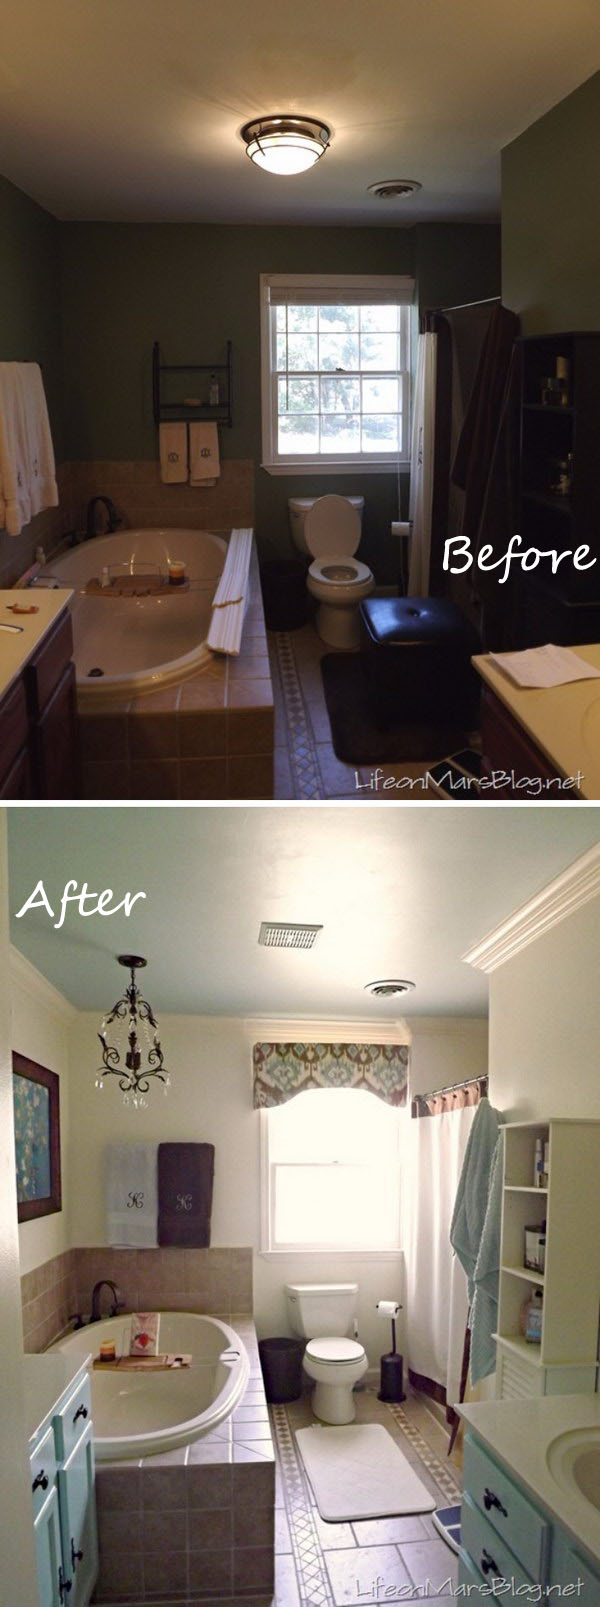 Small Master Bathroom Makeover Before After